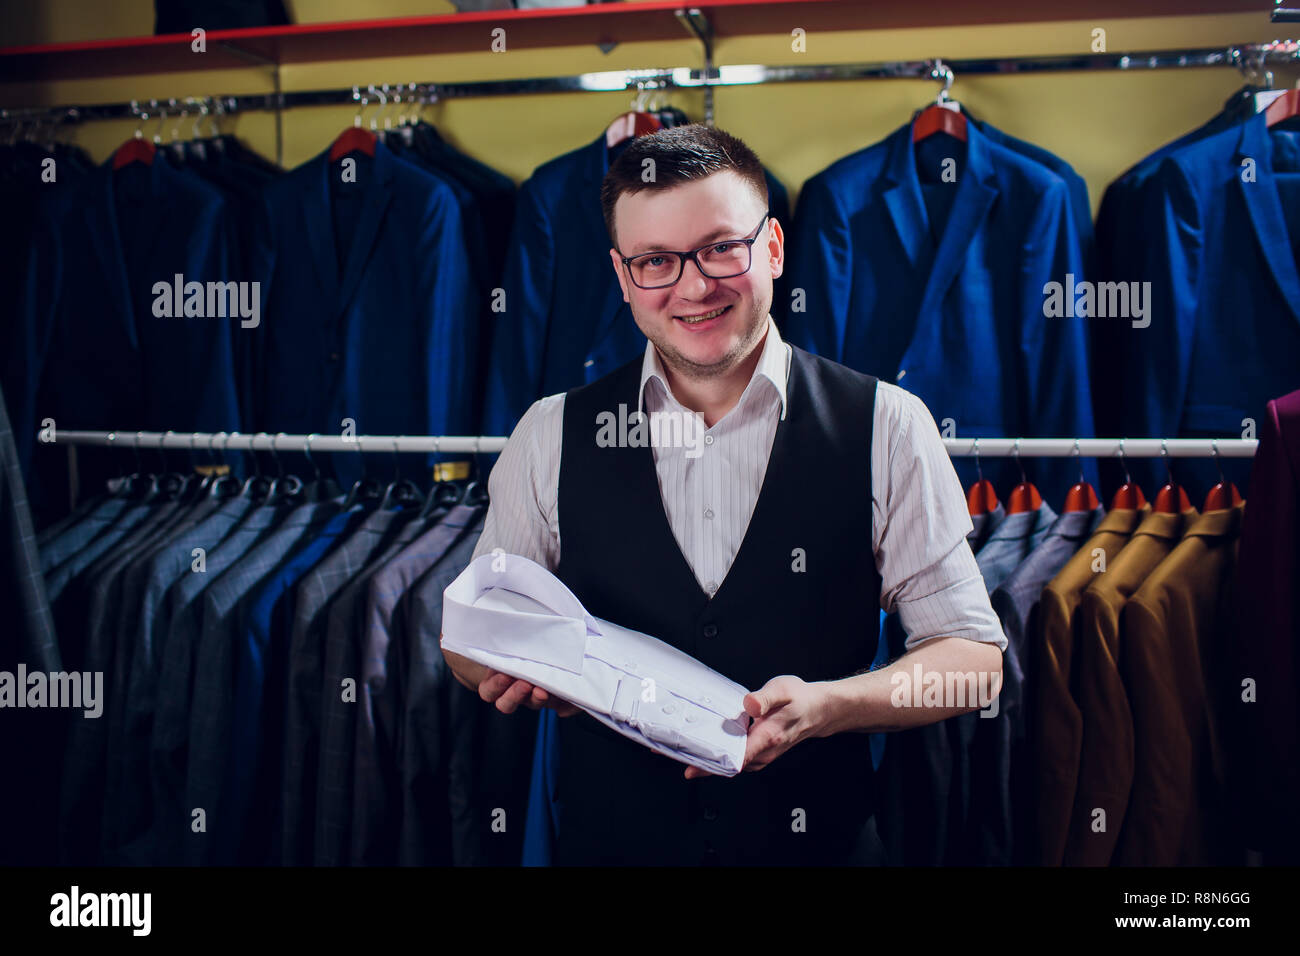 man is buying shirt in store - Stock Image